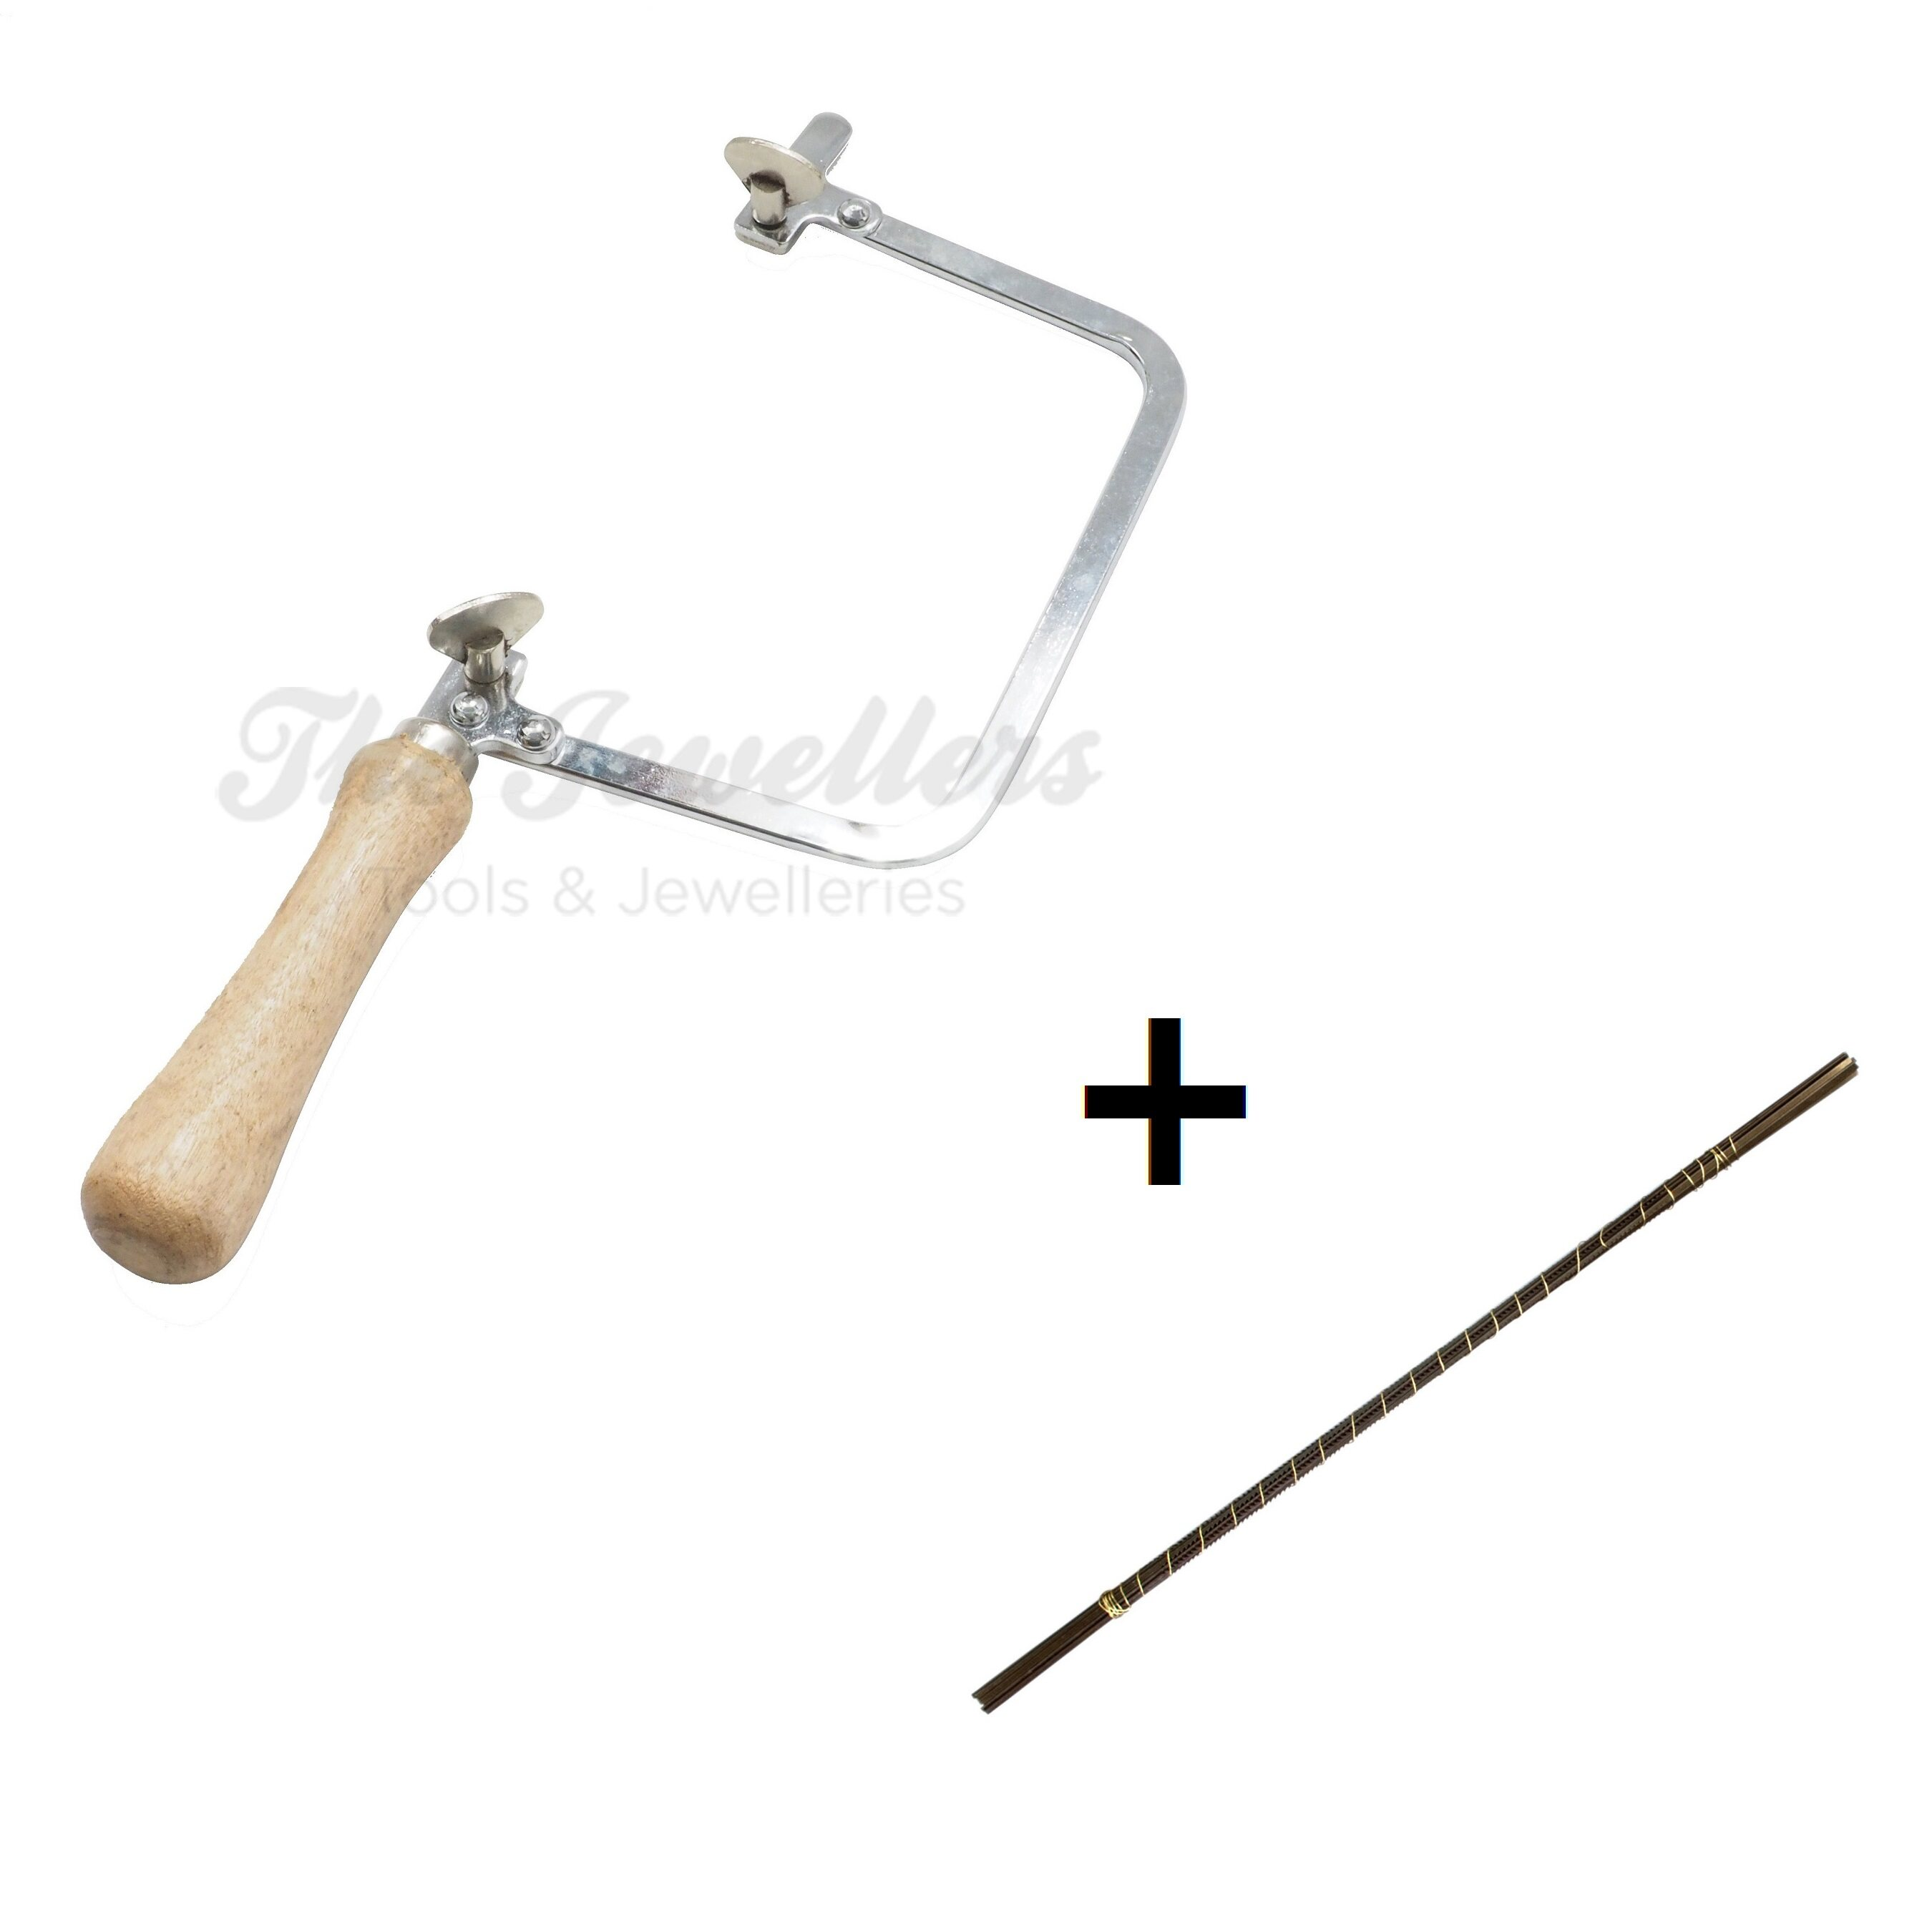 Saw Frame with Wooden Handle for Jewelry Making, Metal, Wood, Plastic Cutting